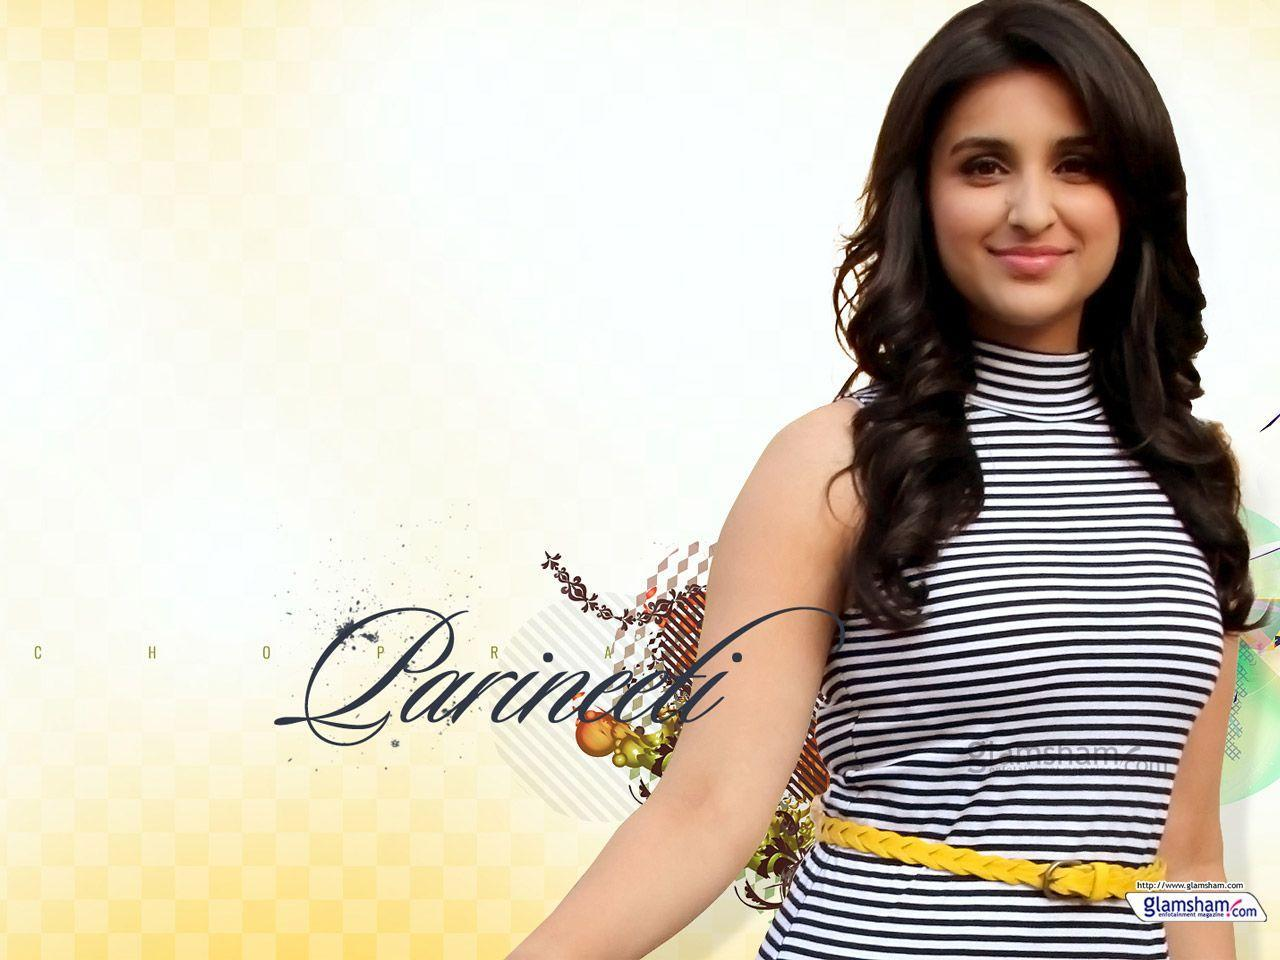 Parineeti chopra wallpapers wallpaper cave - Parineeti chopra wallpapers for iphone ...